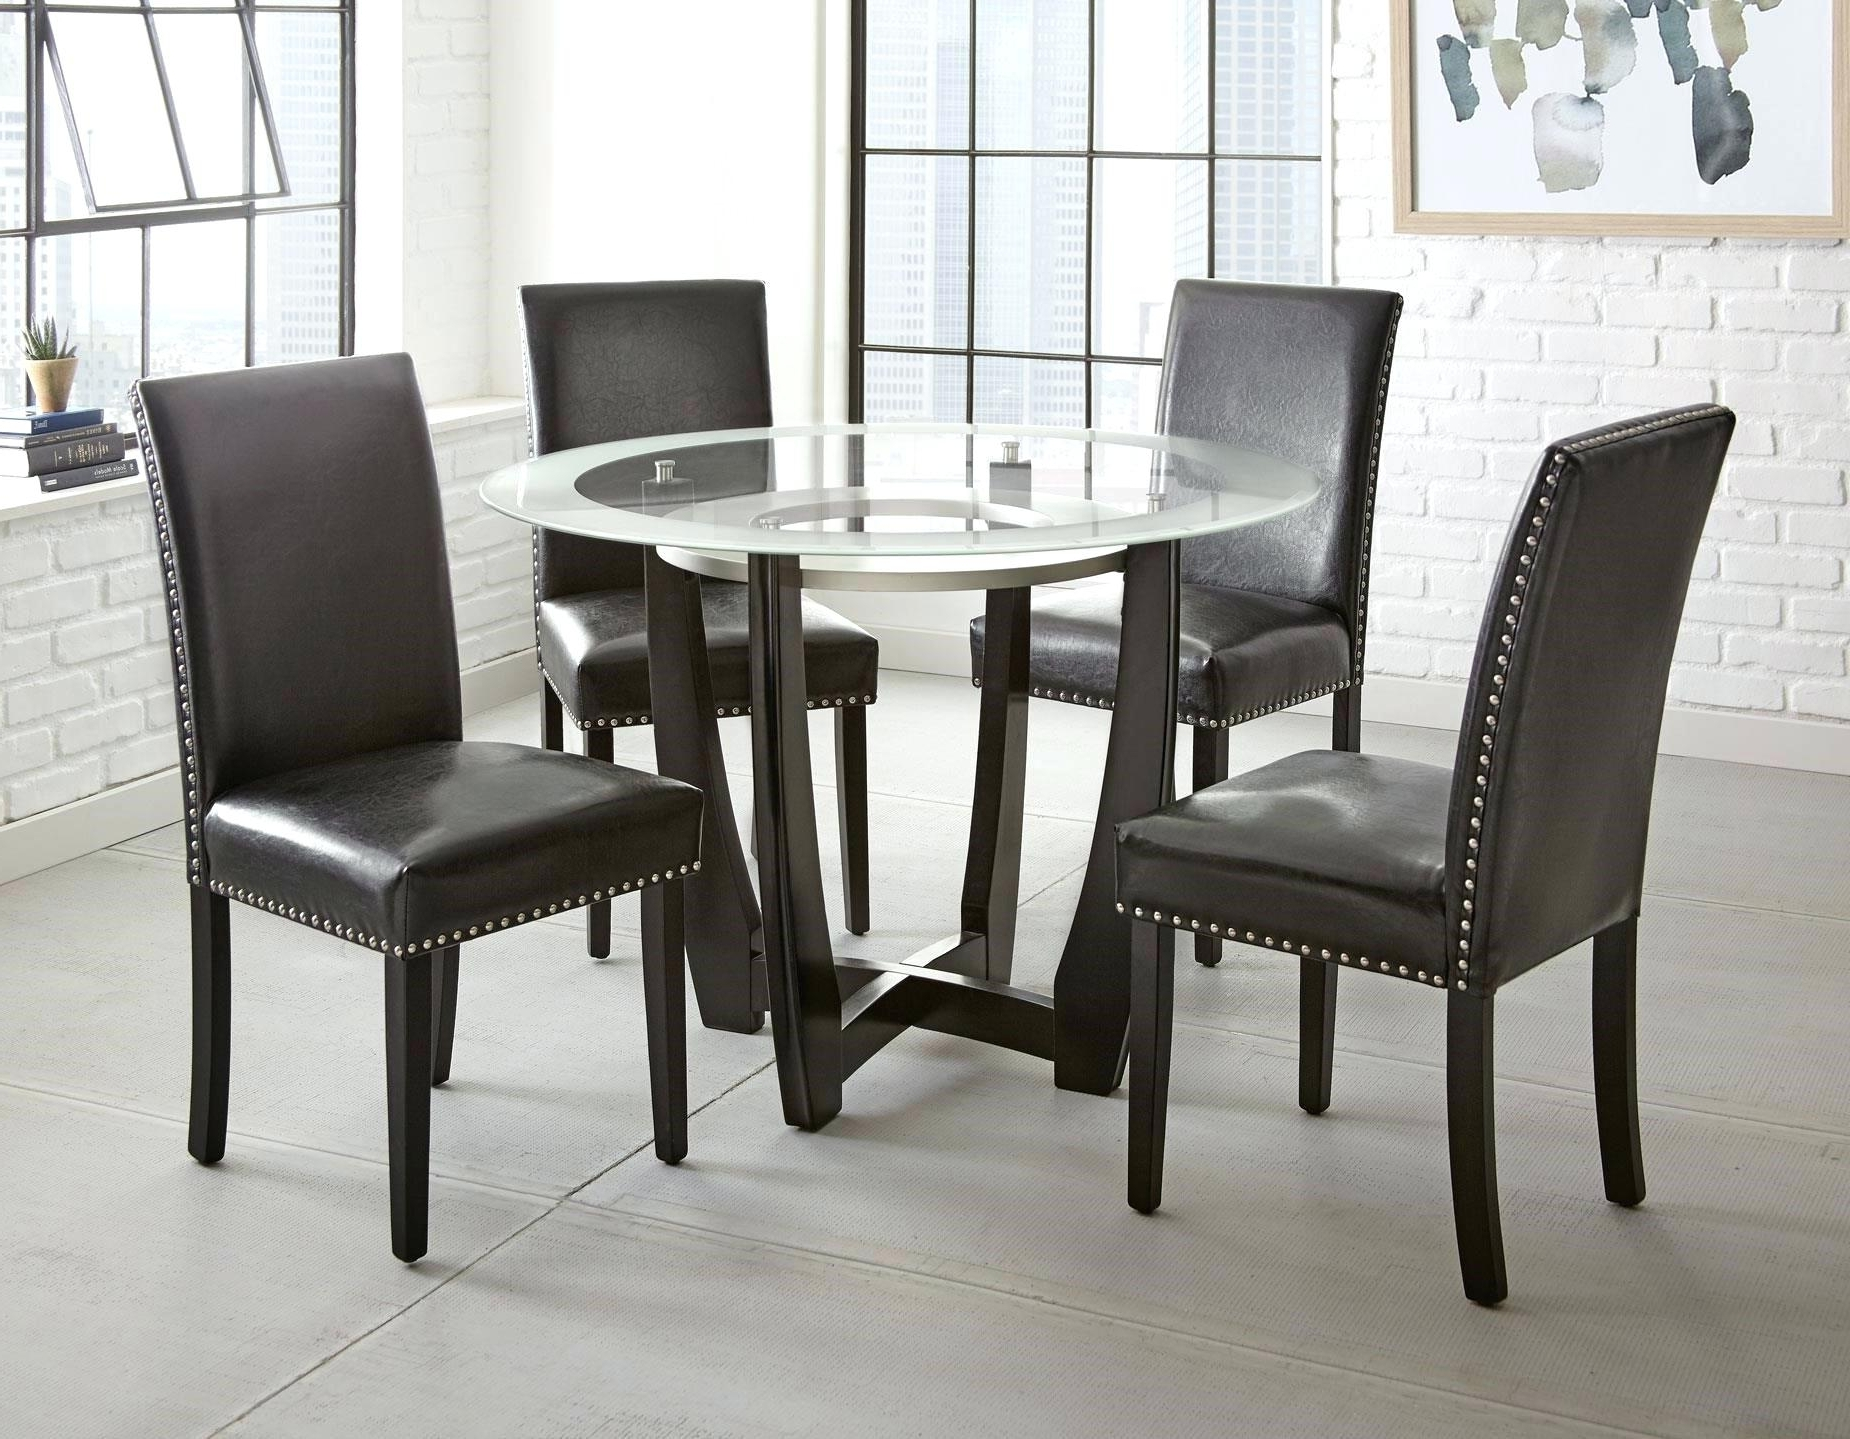 Fashionable 5 Piece Dining Sets Kmart Cora Set Table With Bench Jaclyn Smith With Regard To Cora 5 Piece Dining Sets (View 5 of 25)